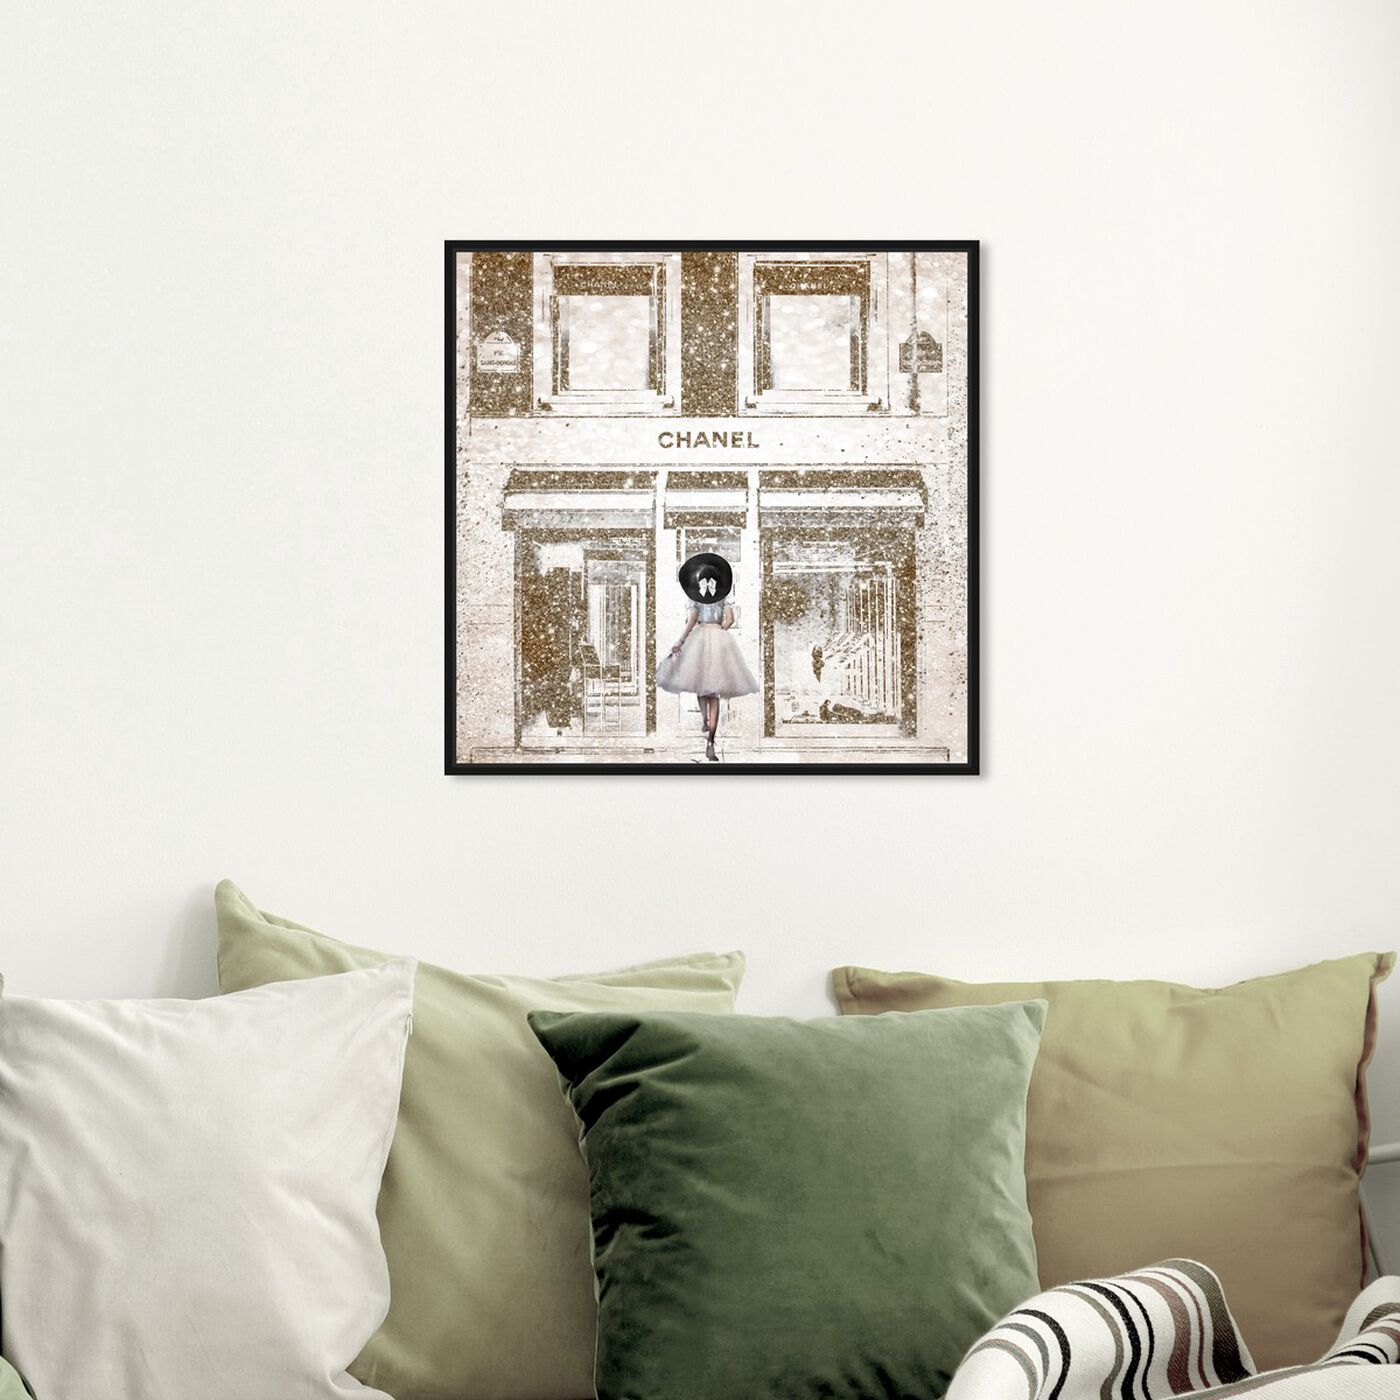 Hanging view of Queen of the Store Gold featuring fashion and glam and road signs art.